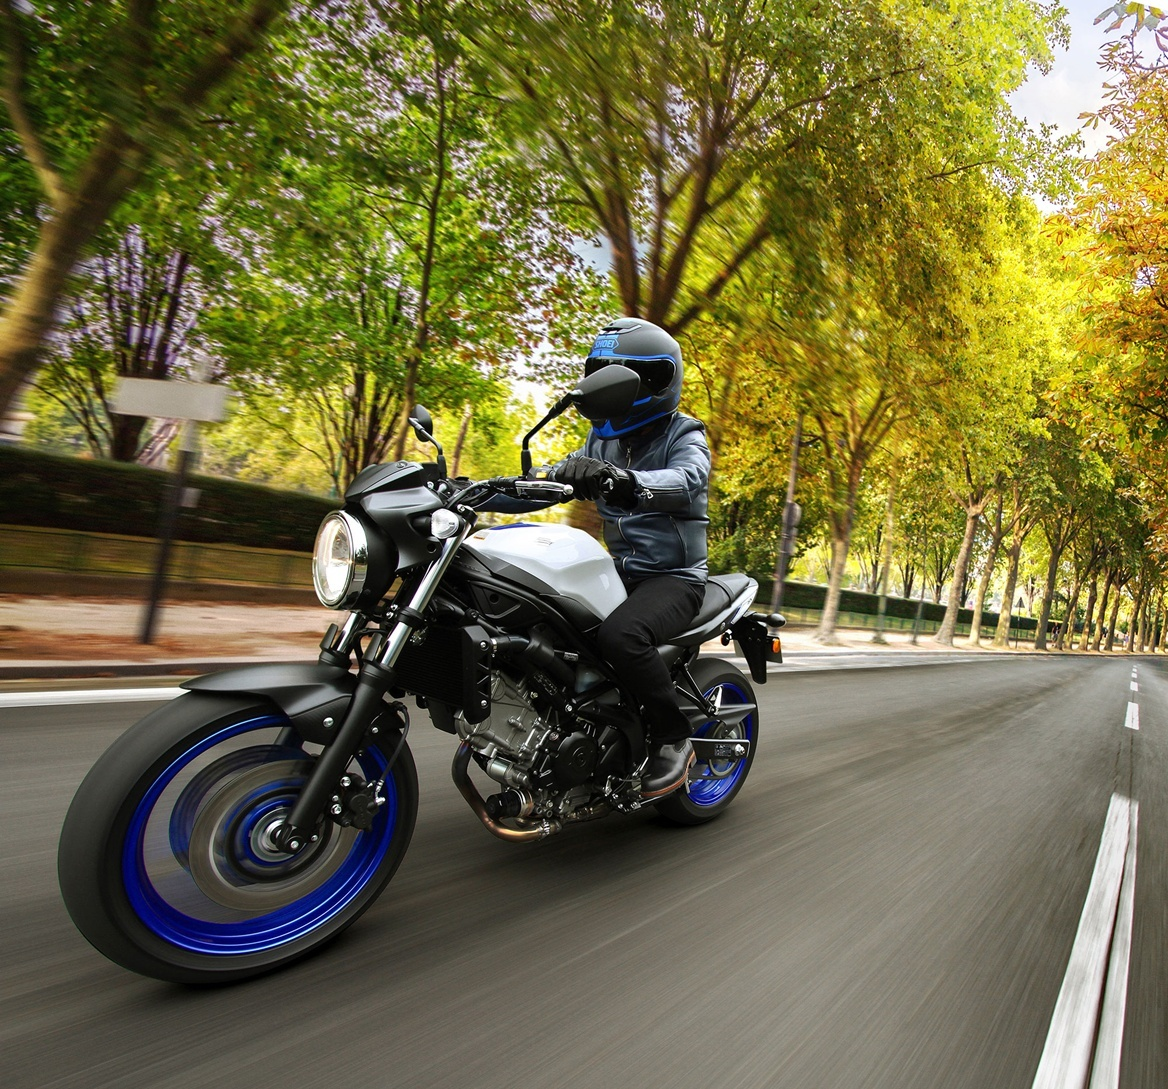 2017 Suzuki SV650 ABS in Mechanicsburg, Pennsylvania